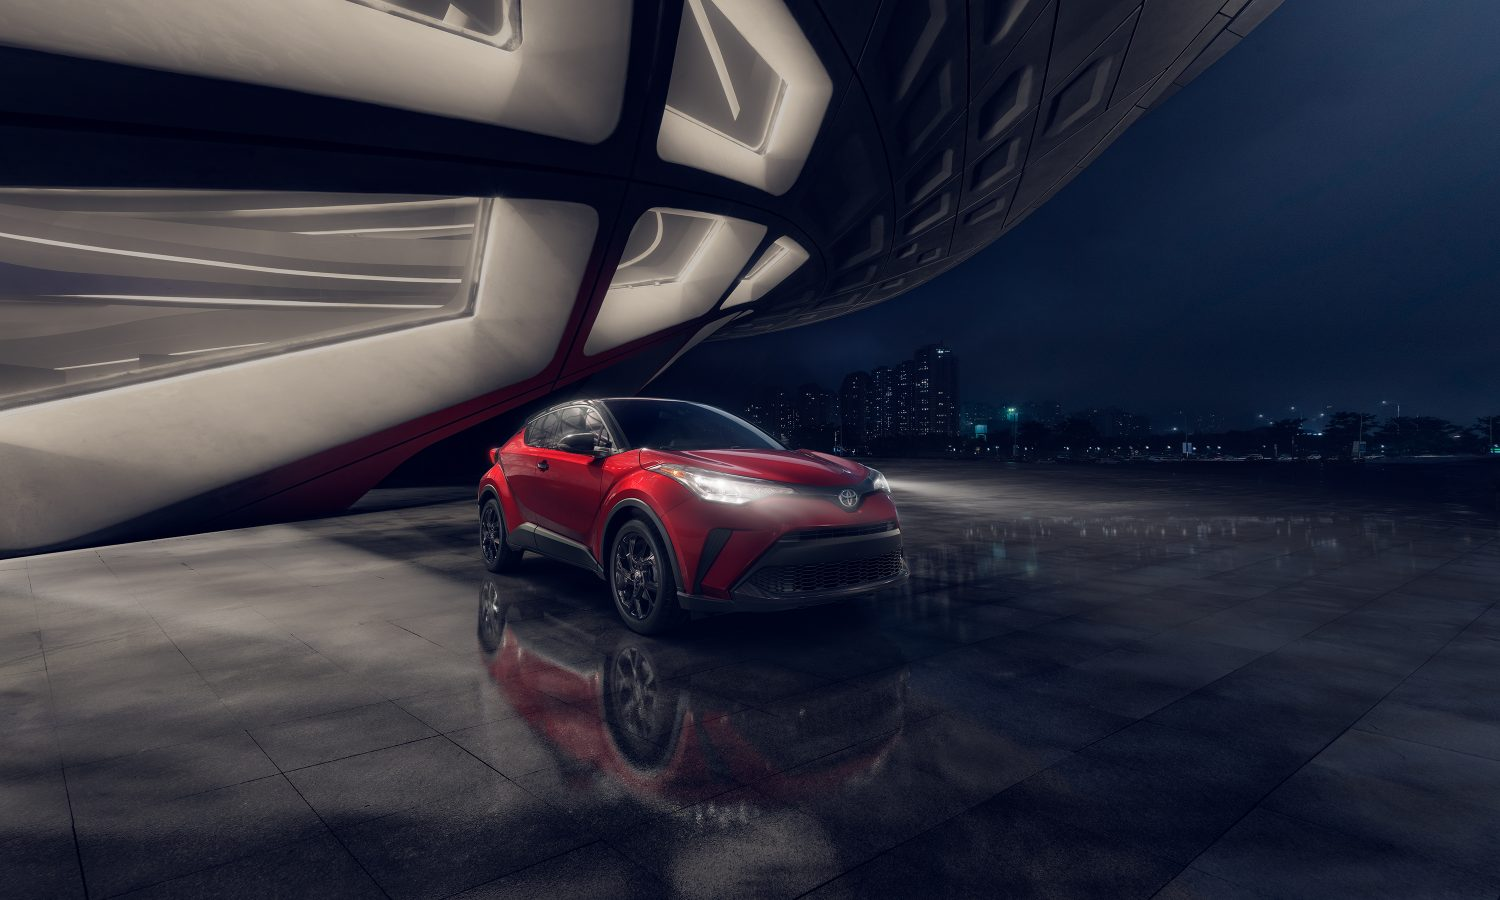 New Nightshade Edition Comes to 2021 Toyota C-HR